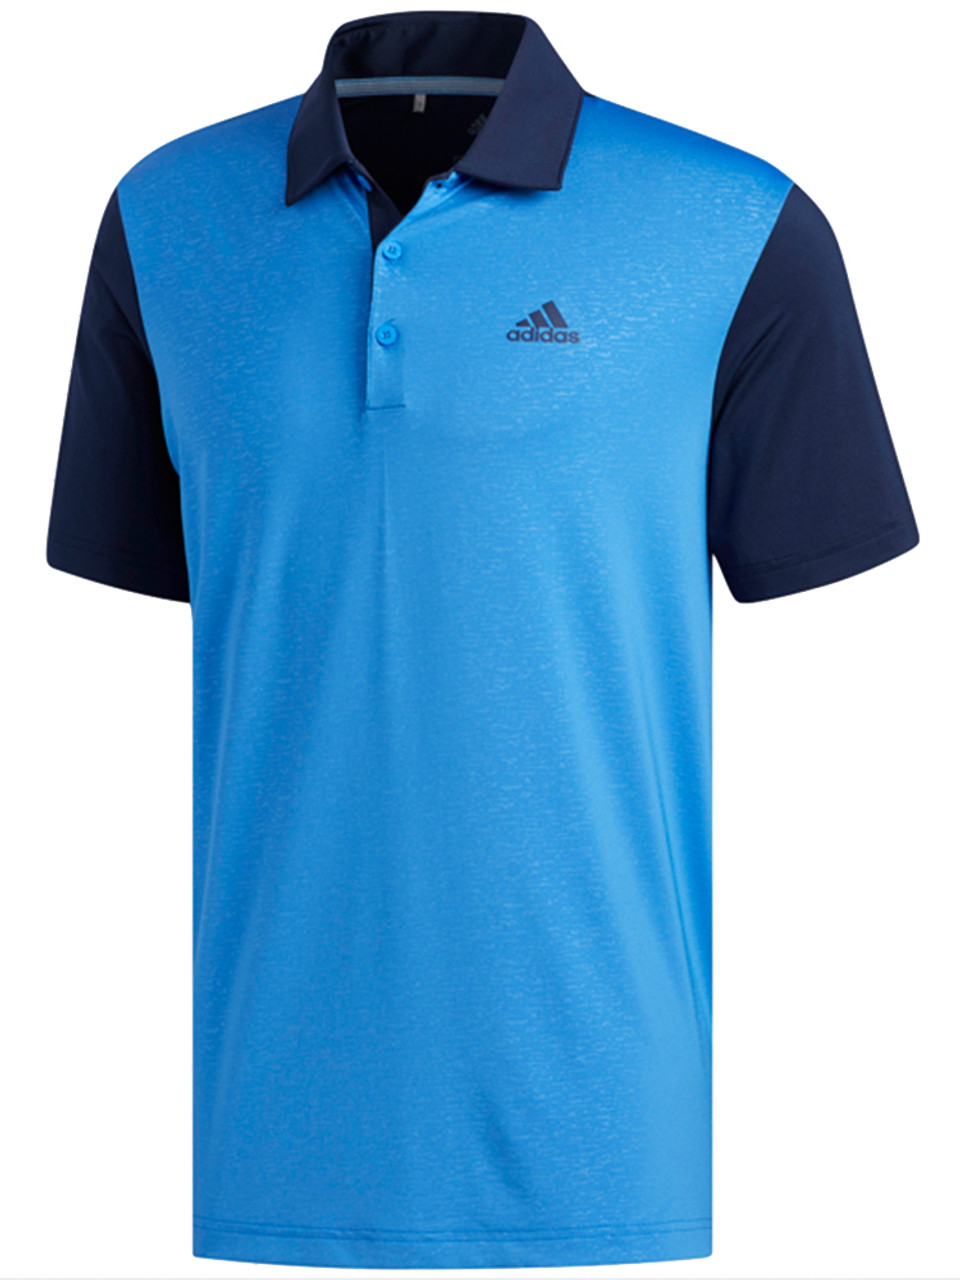 b97c9a9a Adidas Ultimate365 Camo-Embossed Polo - Collegiate Navy/Blue - Mens ...